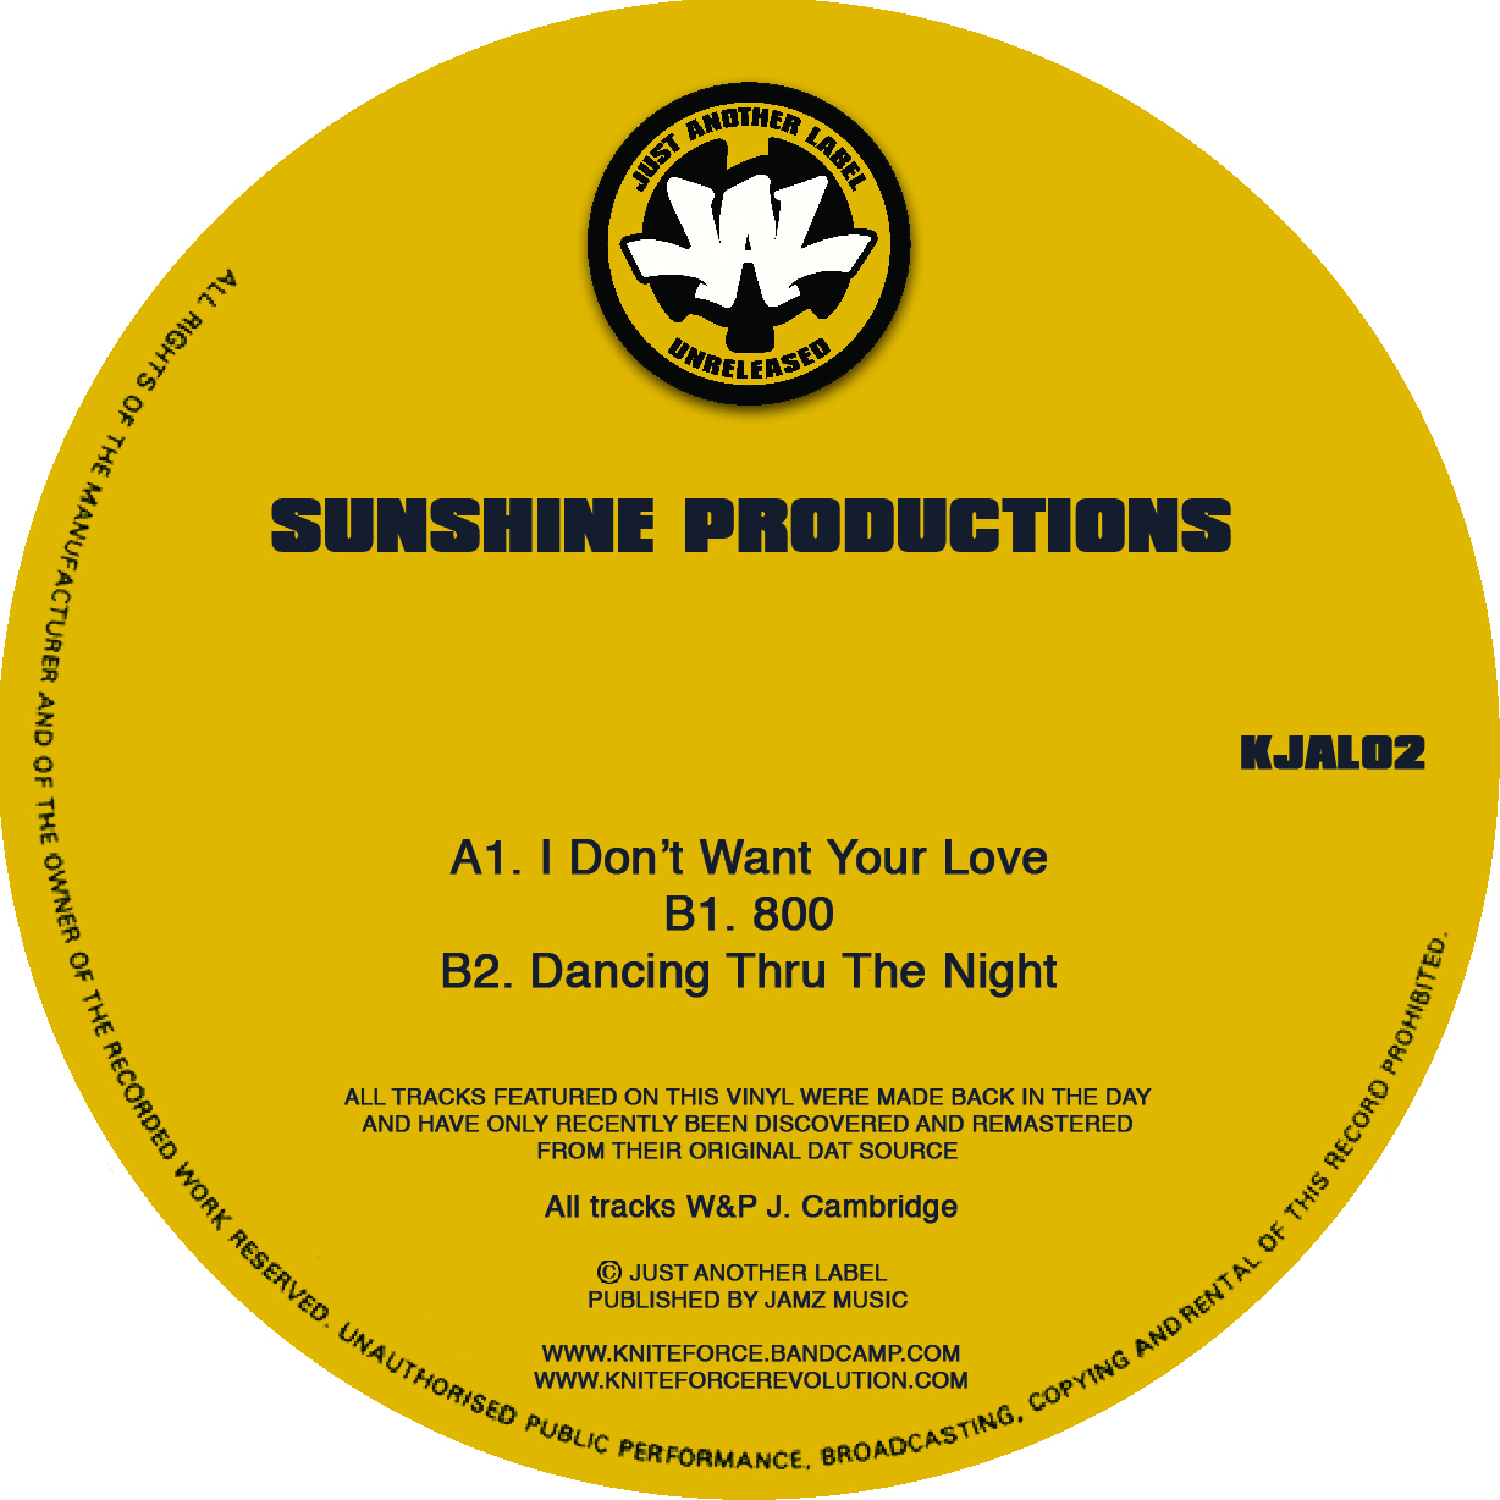 "[KJAL02] Sunshine Productions - I Dont Want Your Love EP (12"" Vinyl + Digital)"